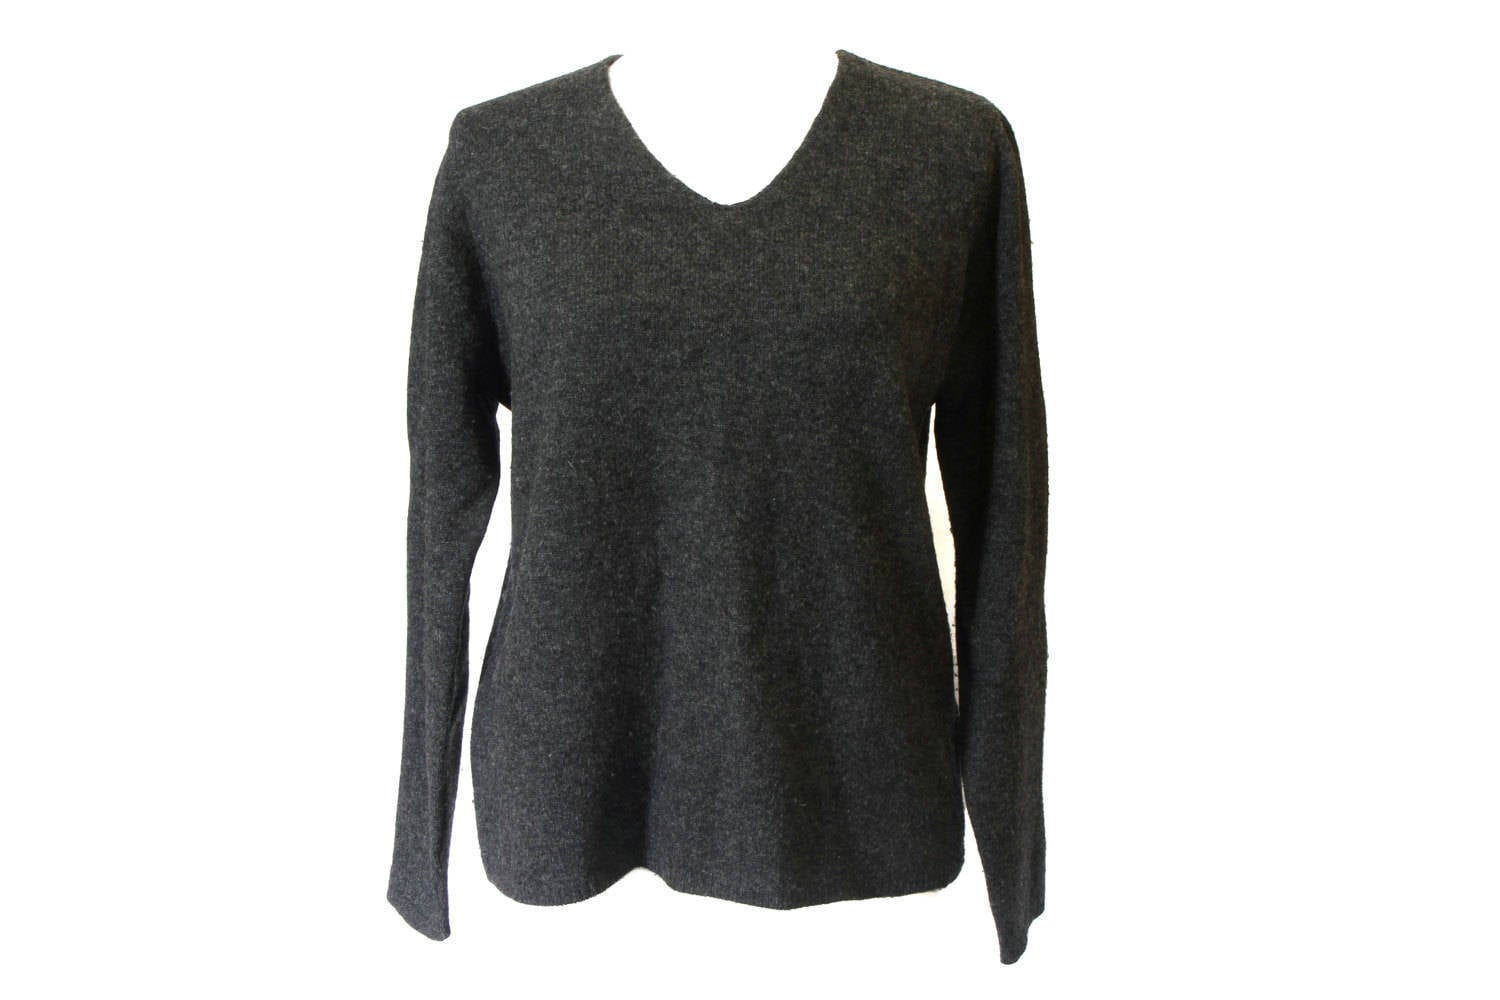 Gray Wool Sweater Womens Pullover Sweater Winter Lambswool